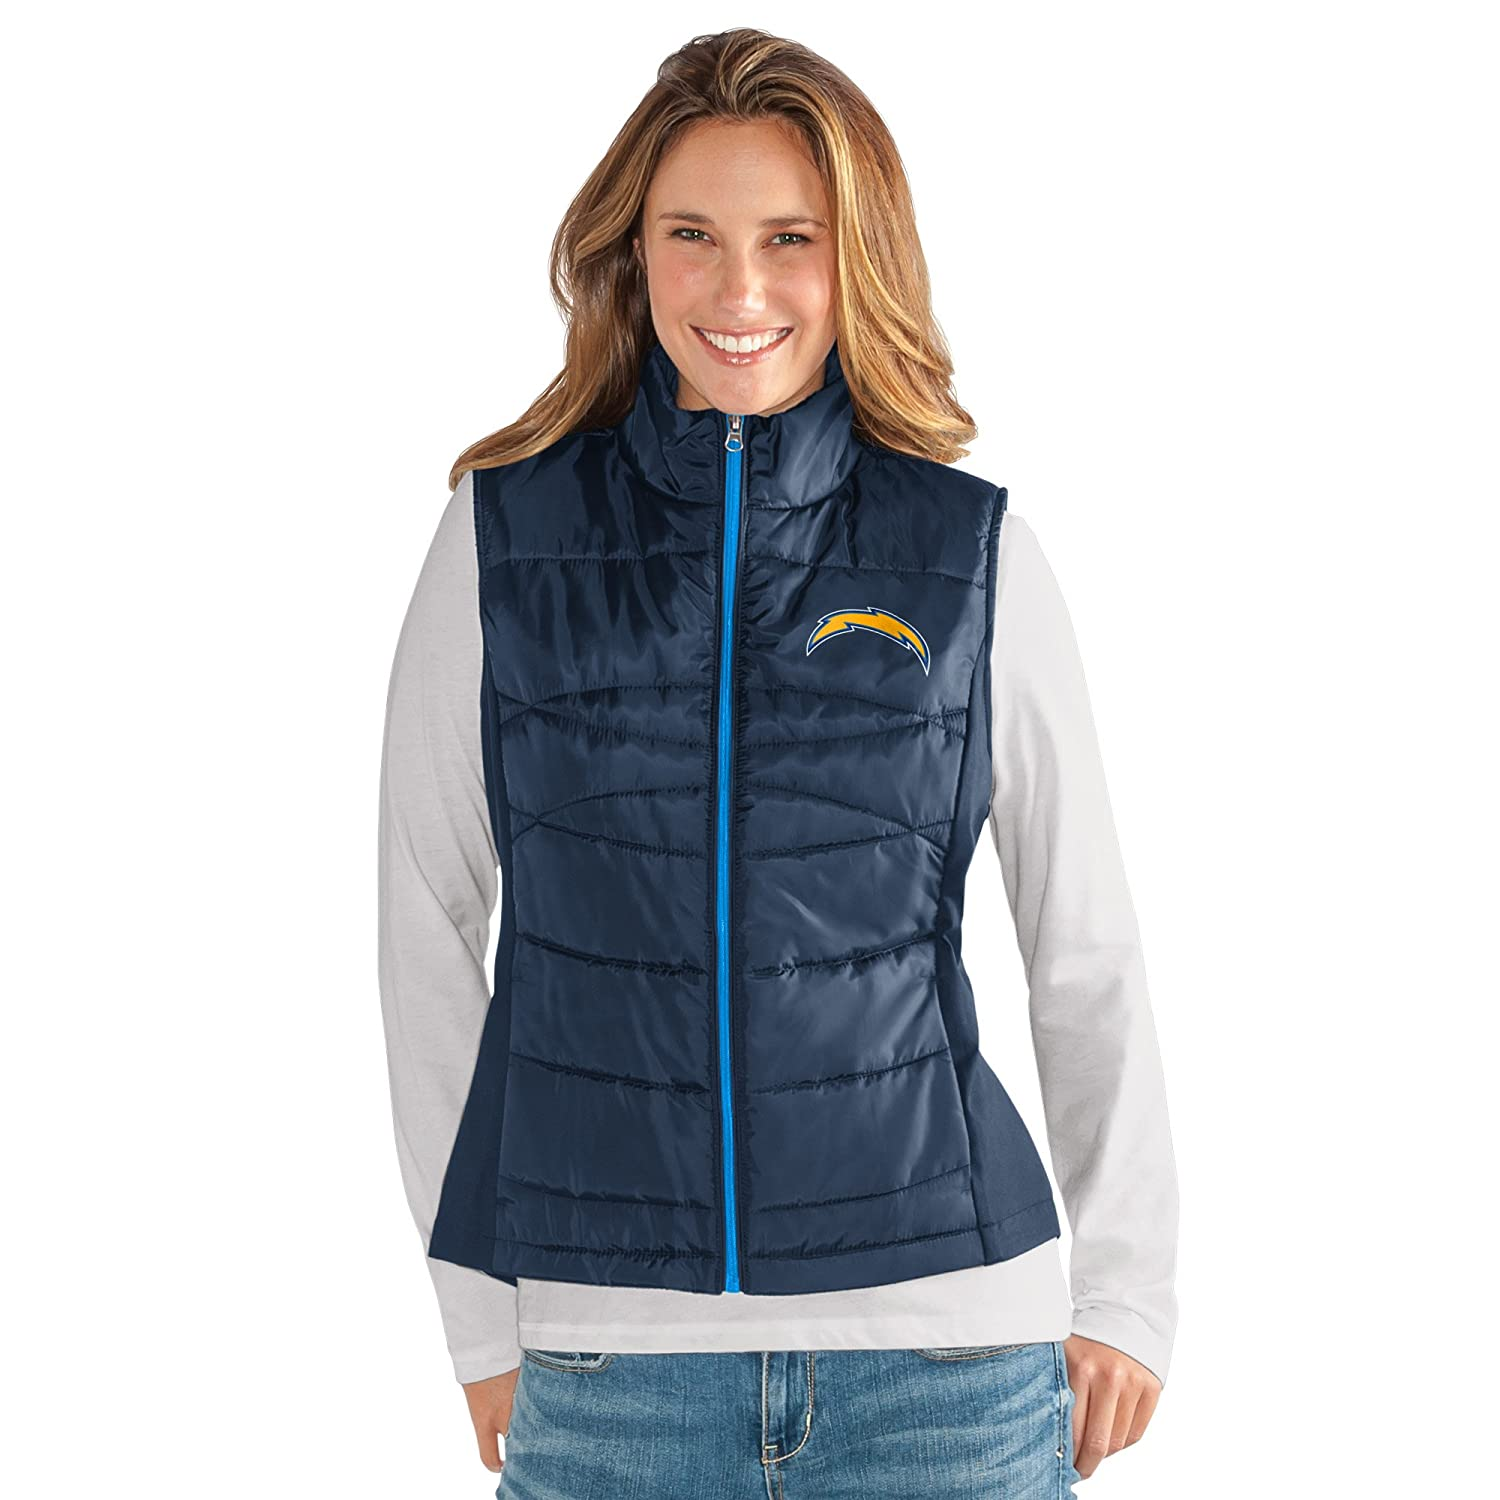 GIII For Her Women's Wing Back Vest, Navy, Medium G-III Licensed Apparel NMY00119